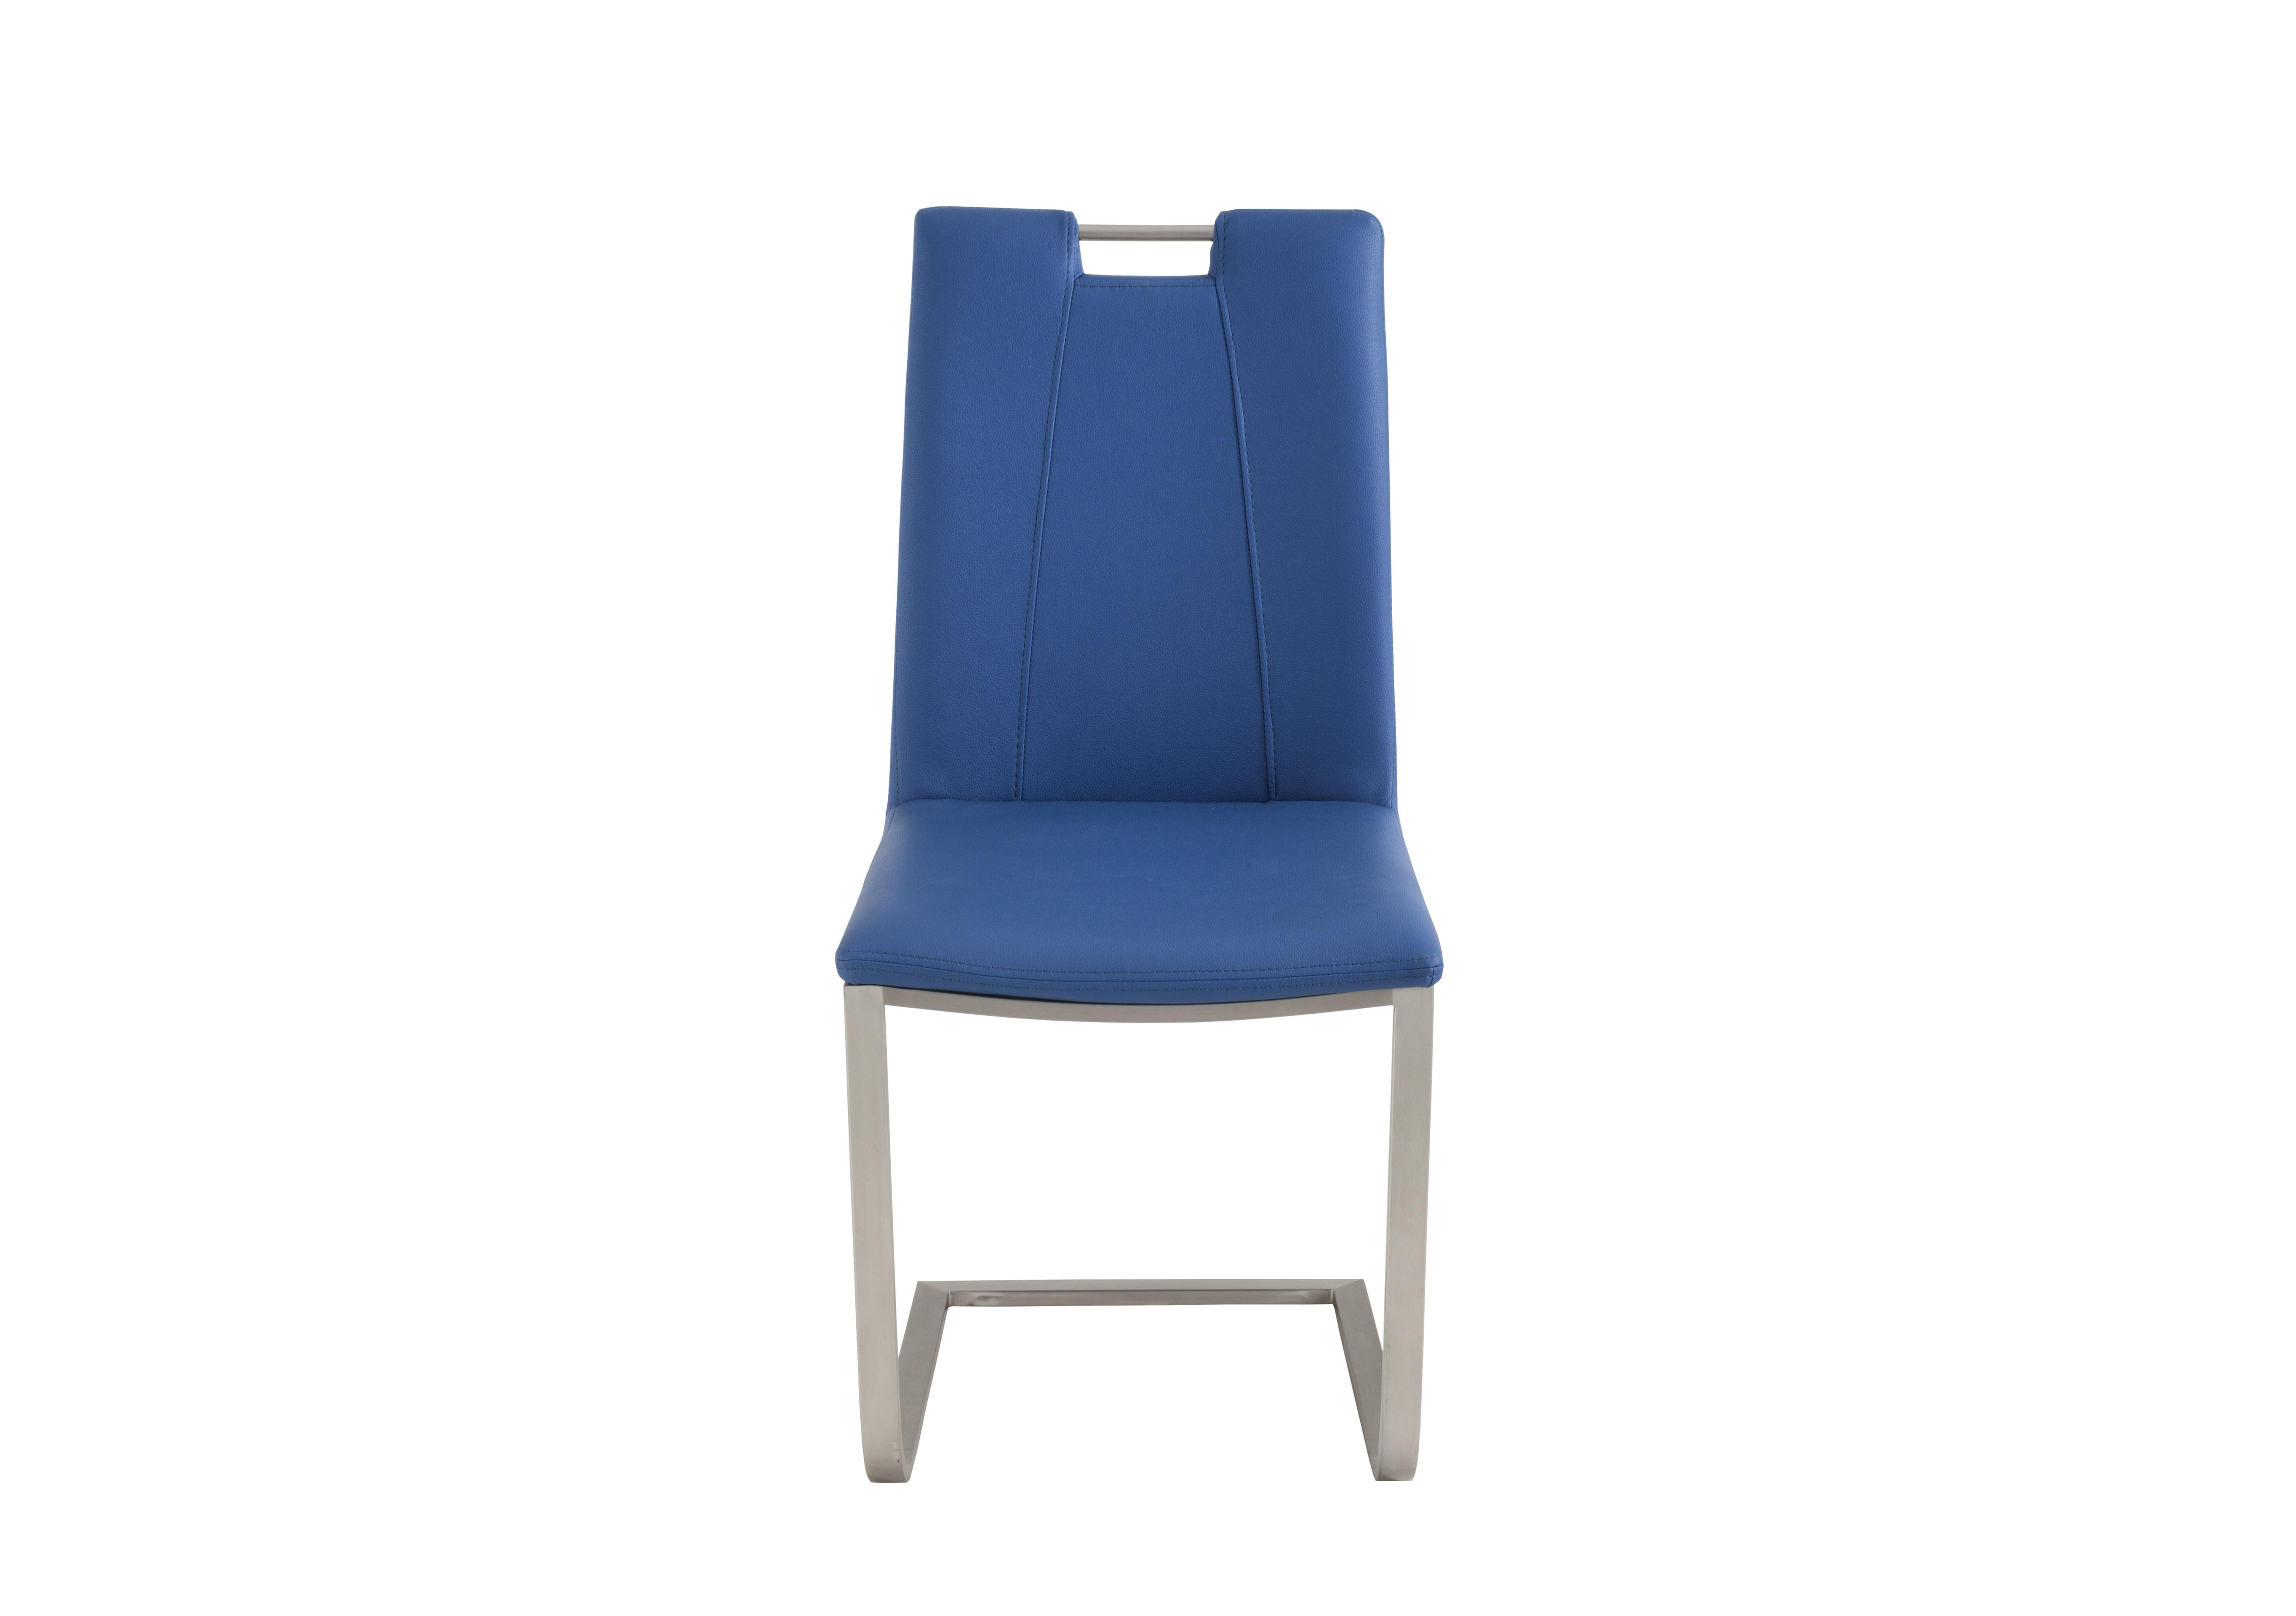 cloth chairs furniture. Save £10. Grande Dining Chair Cloth Chairs Furniture